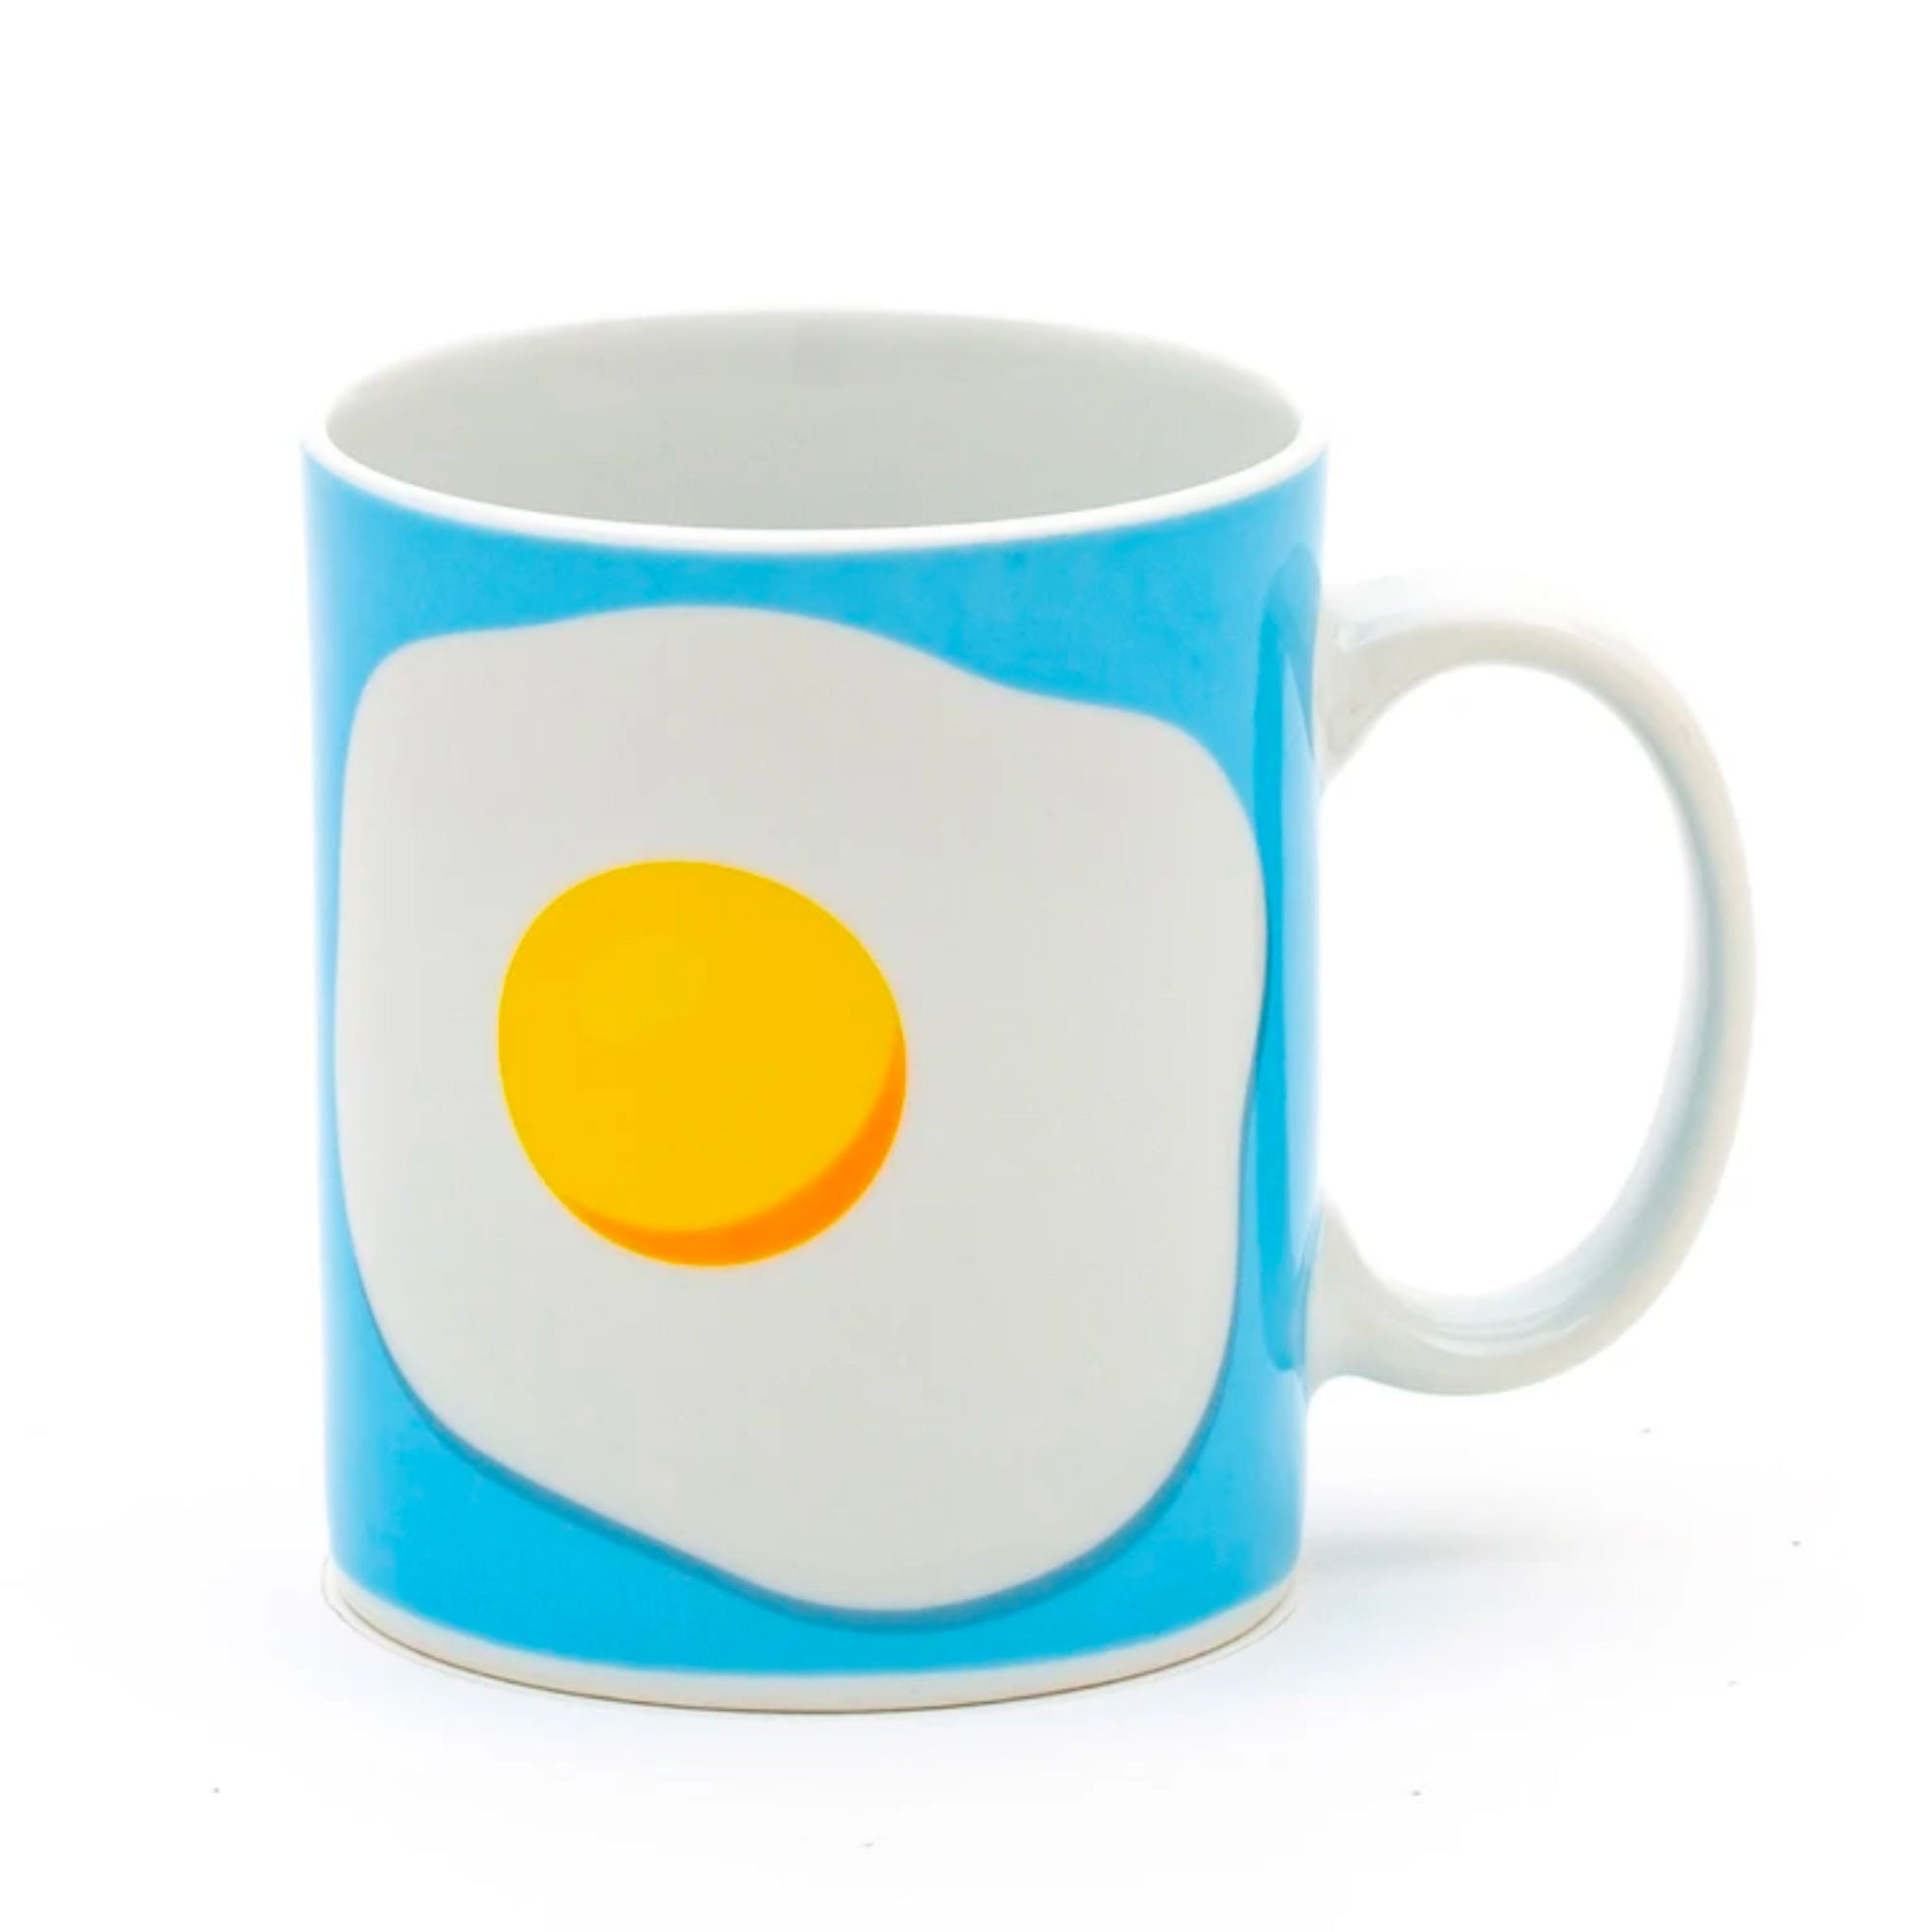 Seletti Blow by Studio Job Mug, egg